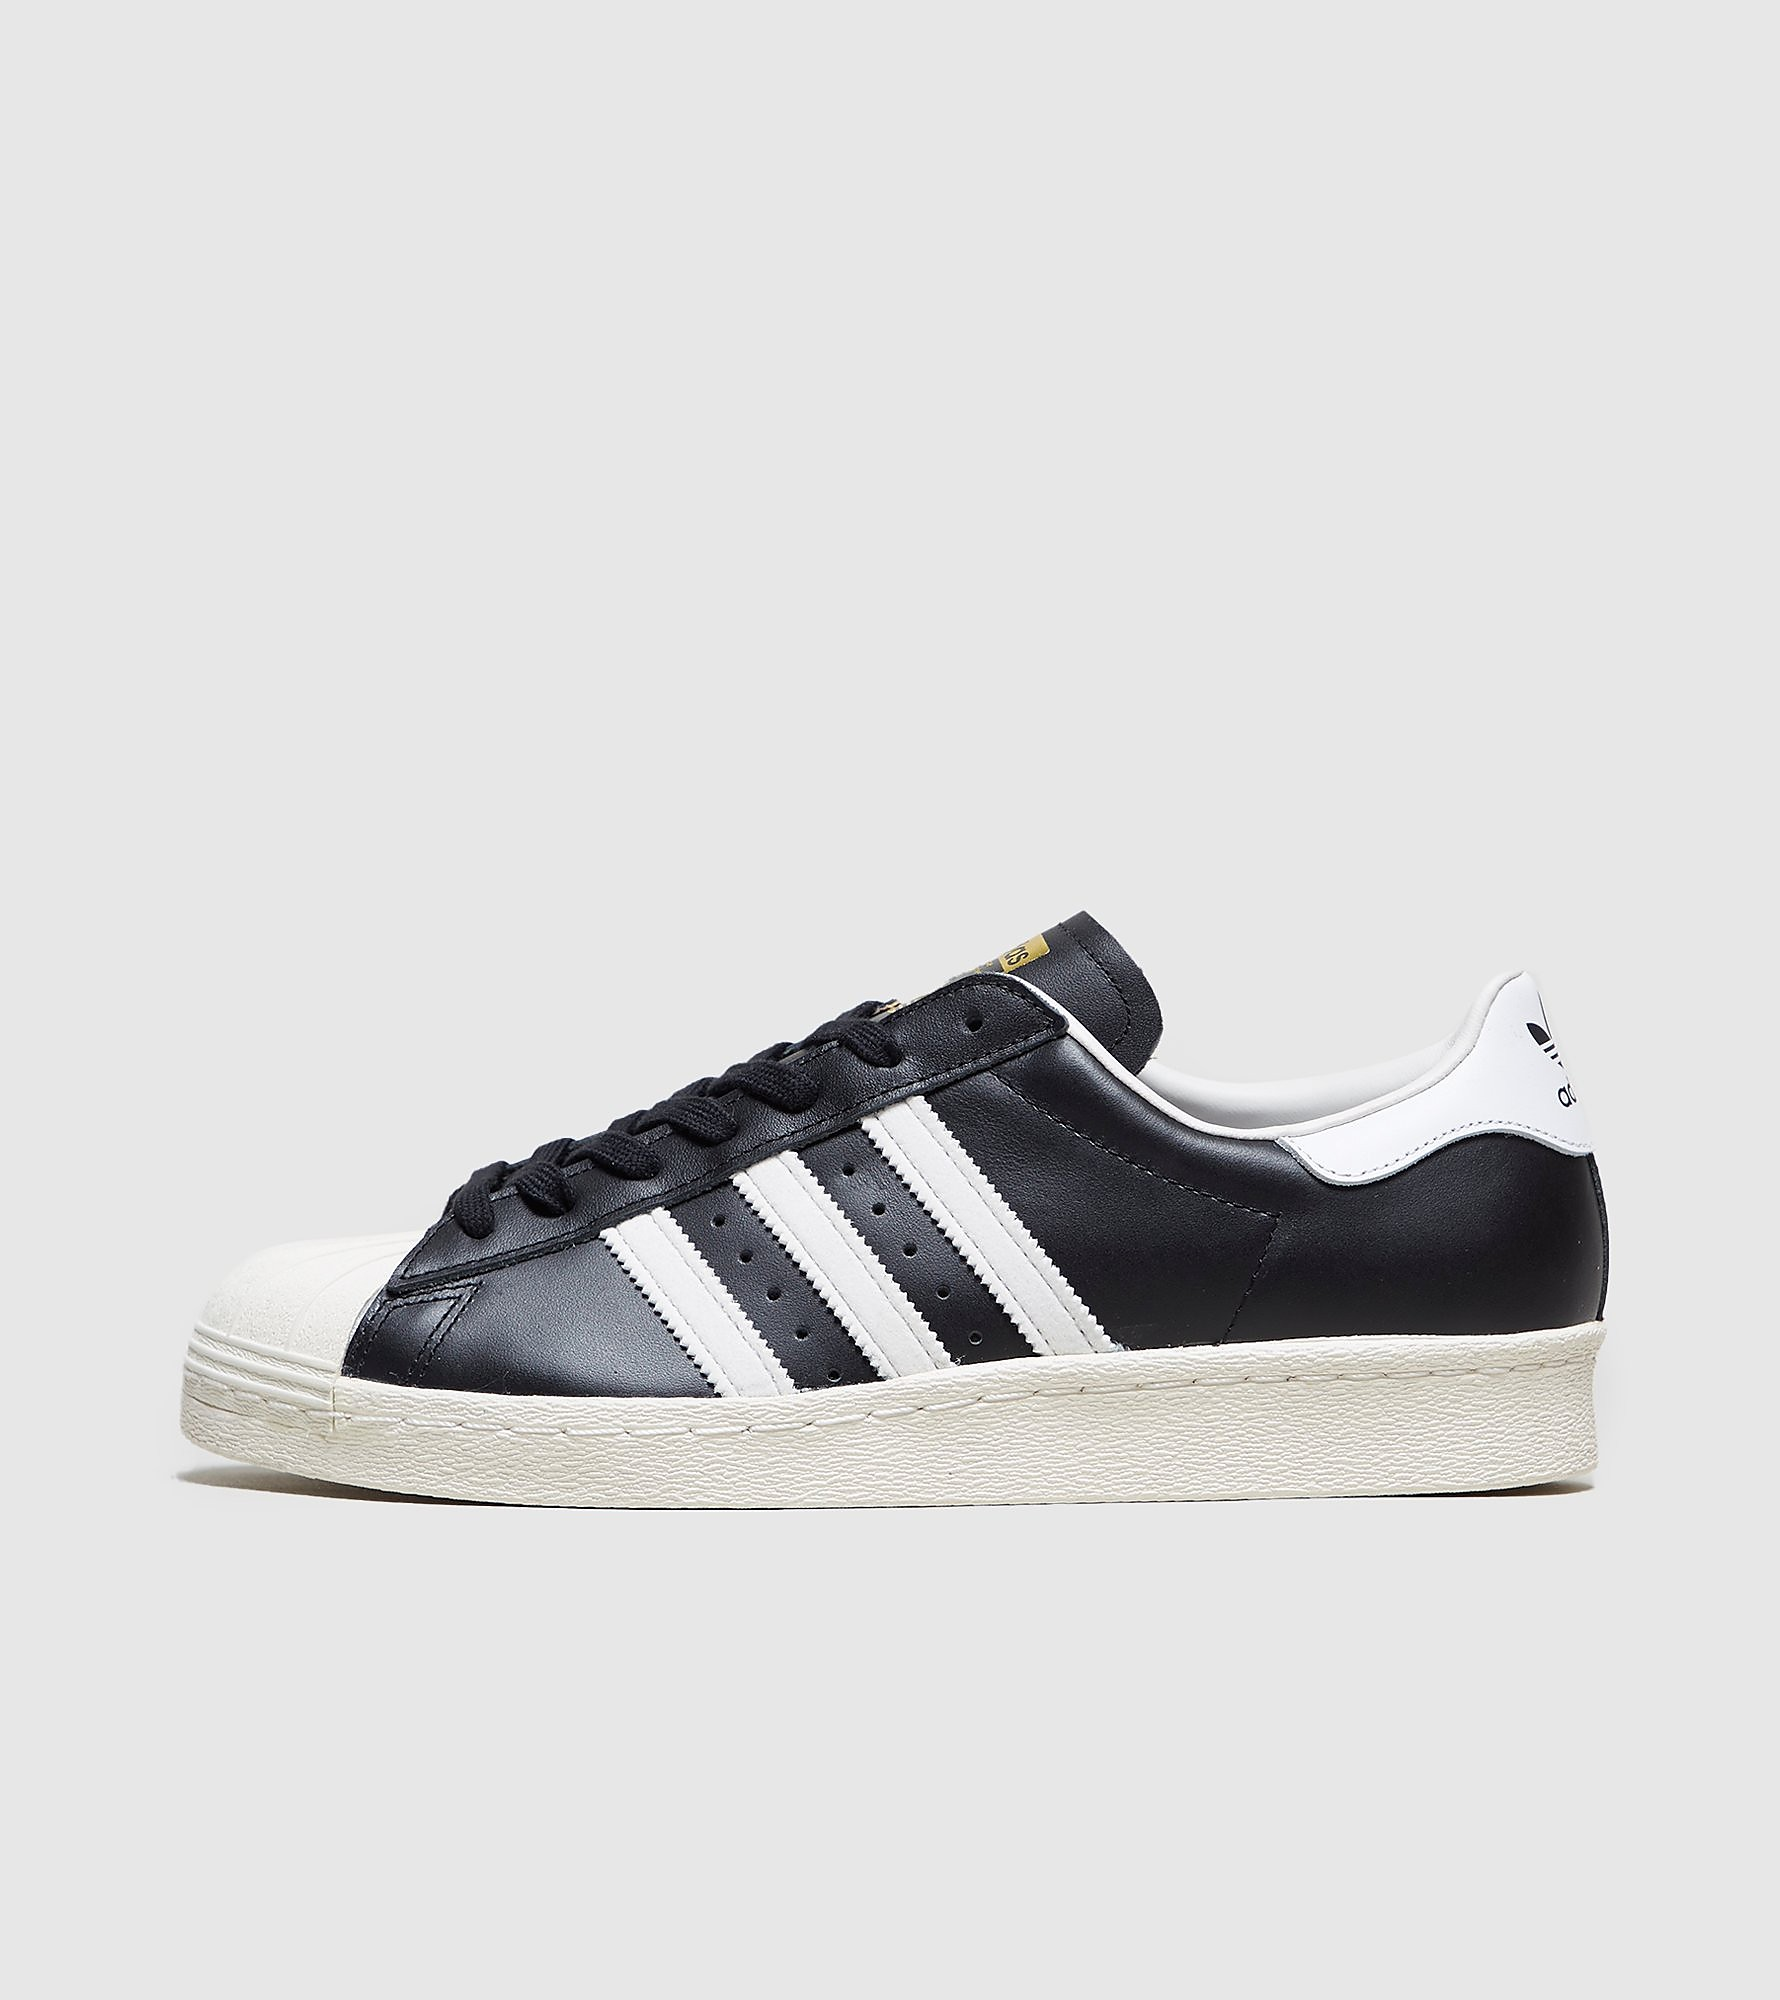 adidas Originals Superstar 80s, Noir